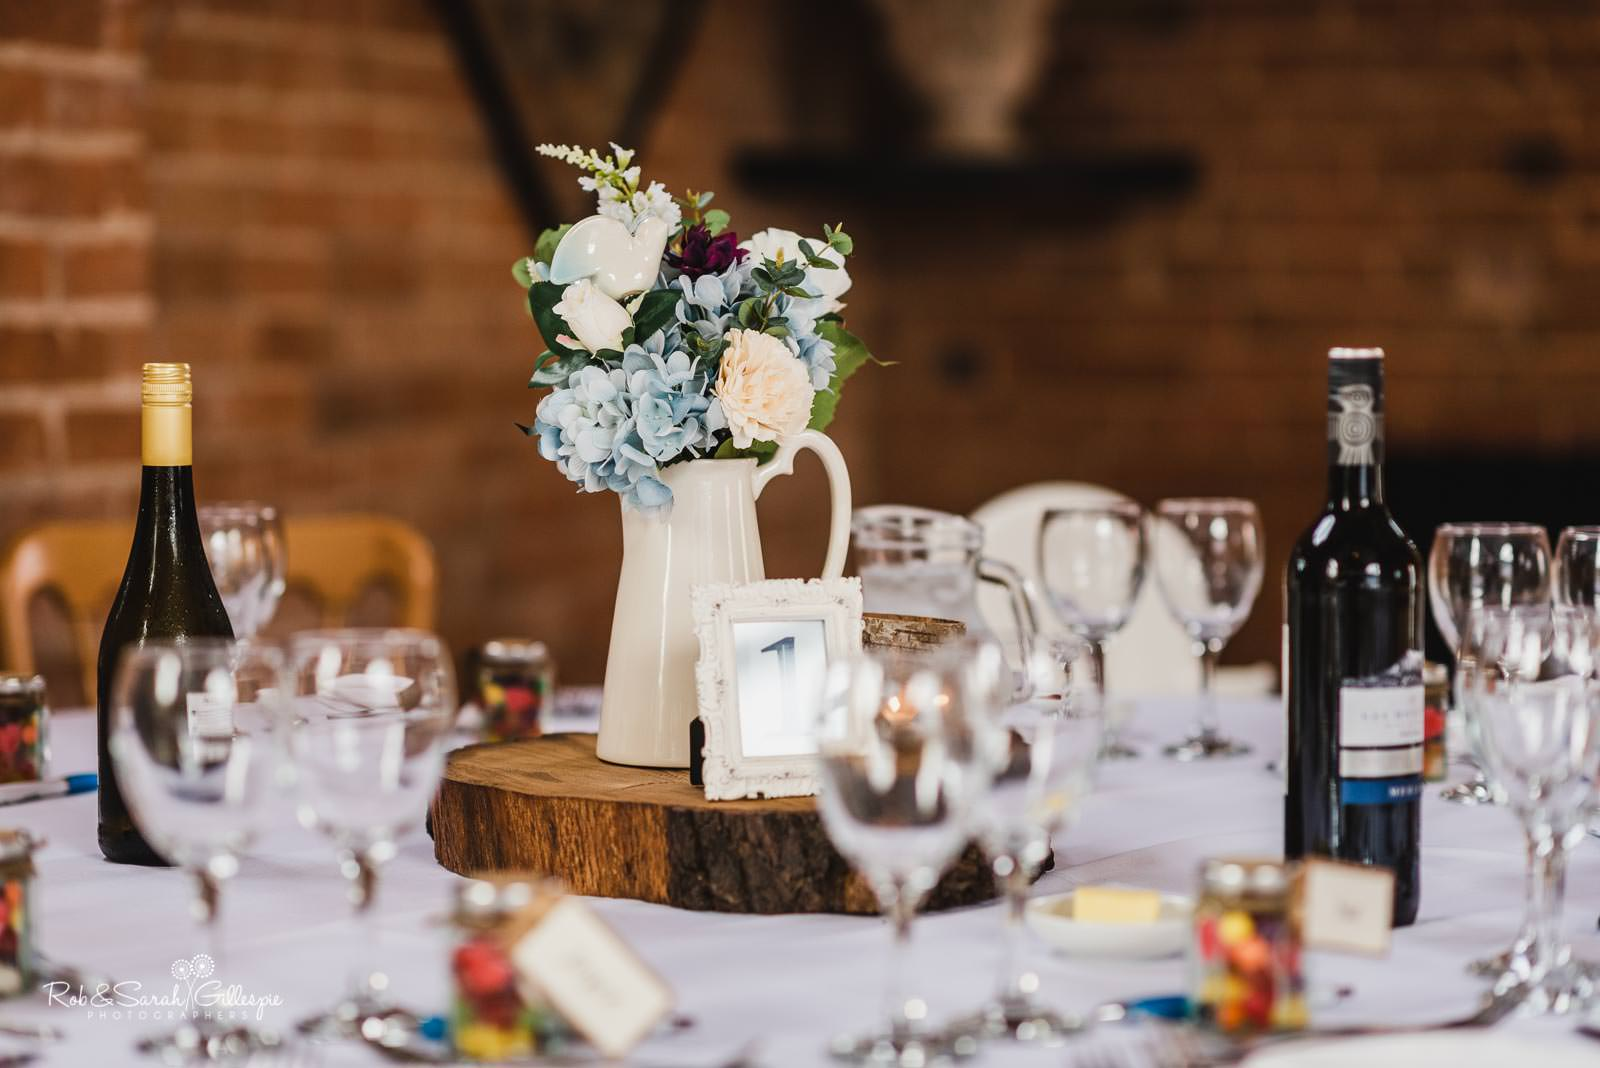 Wedding breakfast table details at Swallows Nest Barn